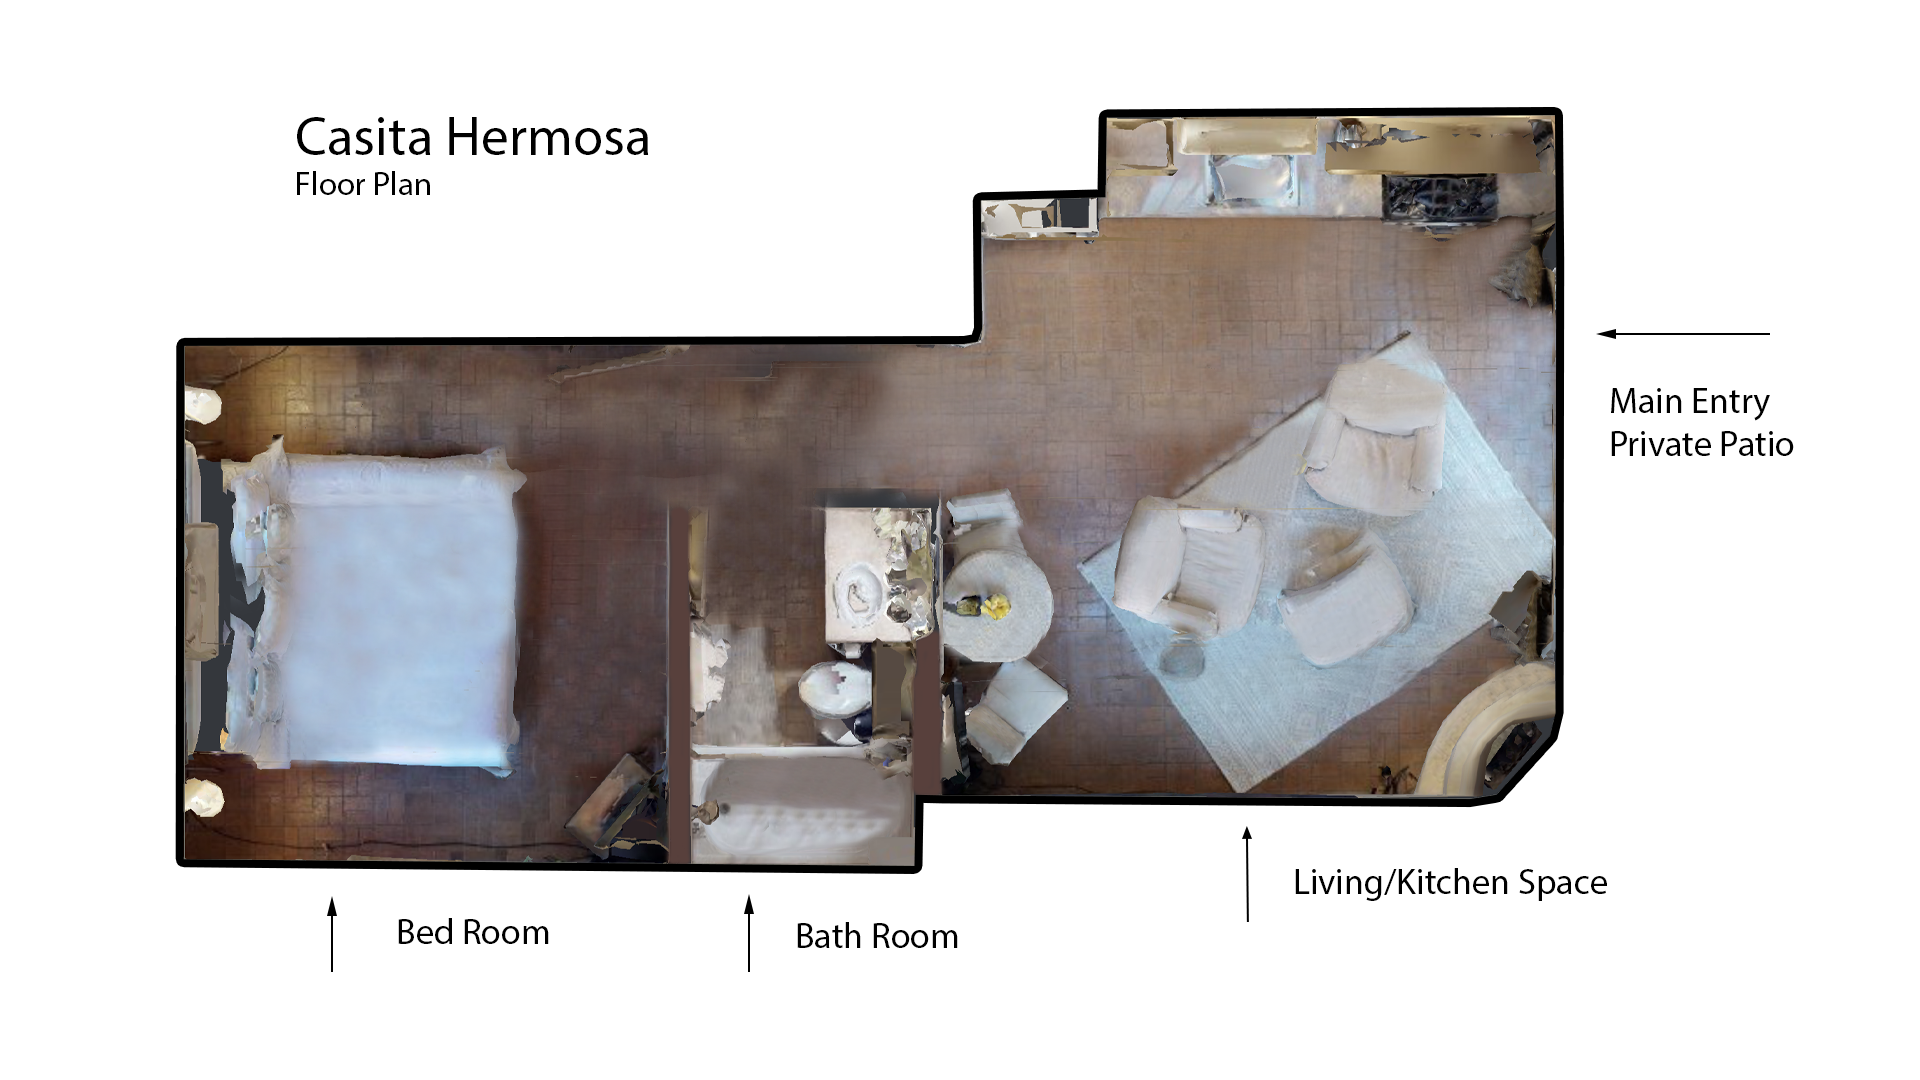 Floor Plan for Casita Hermosa